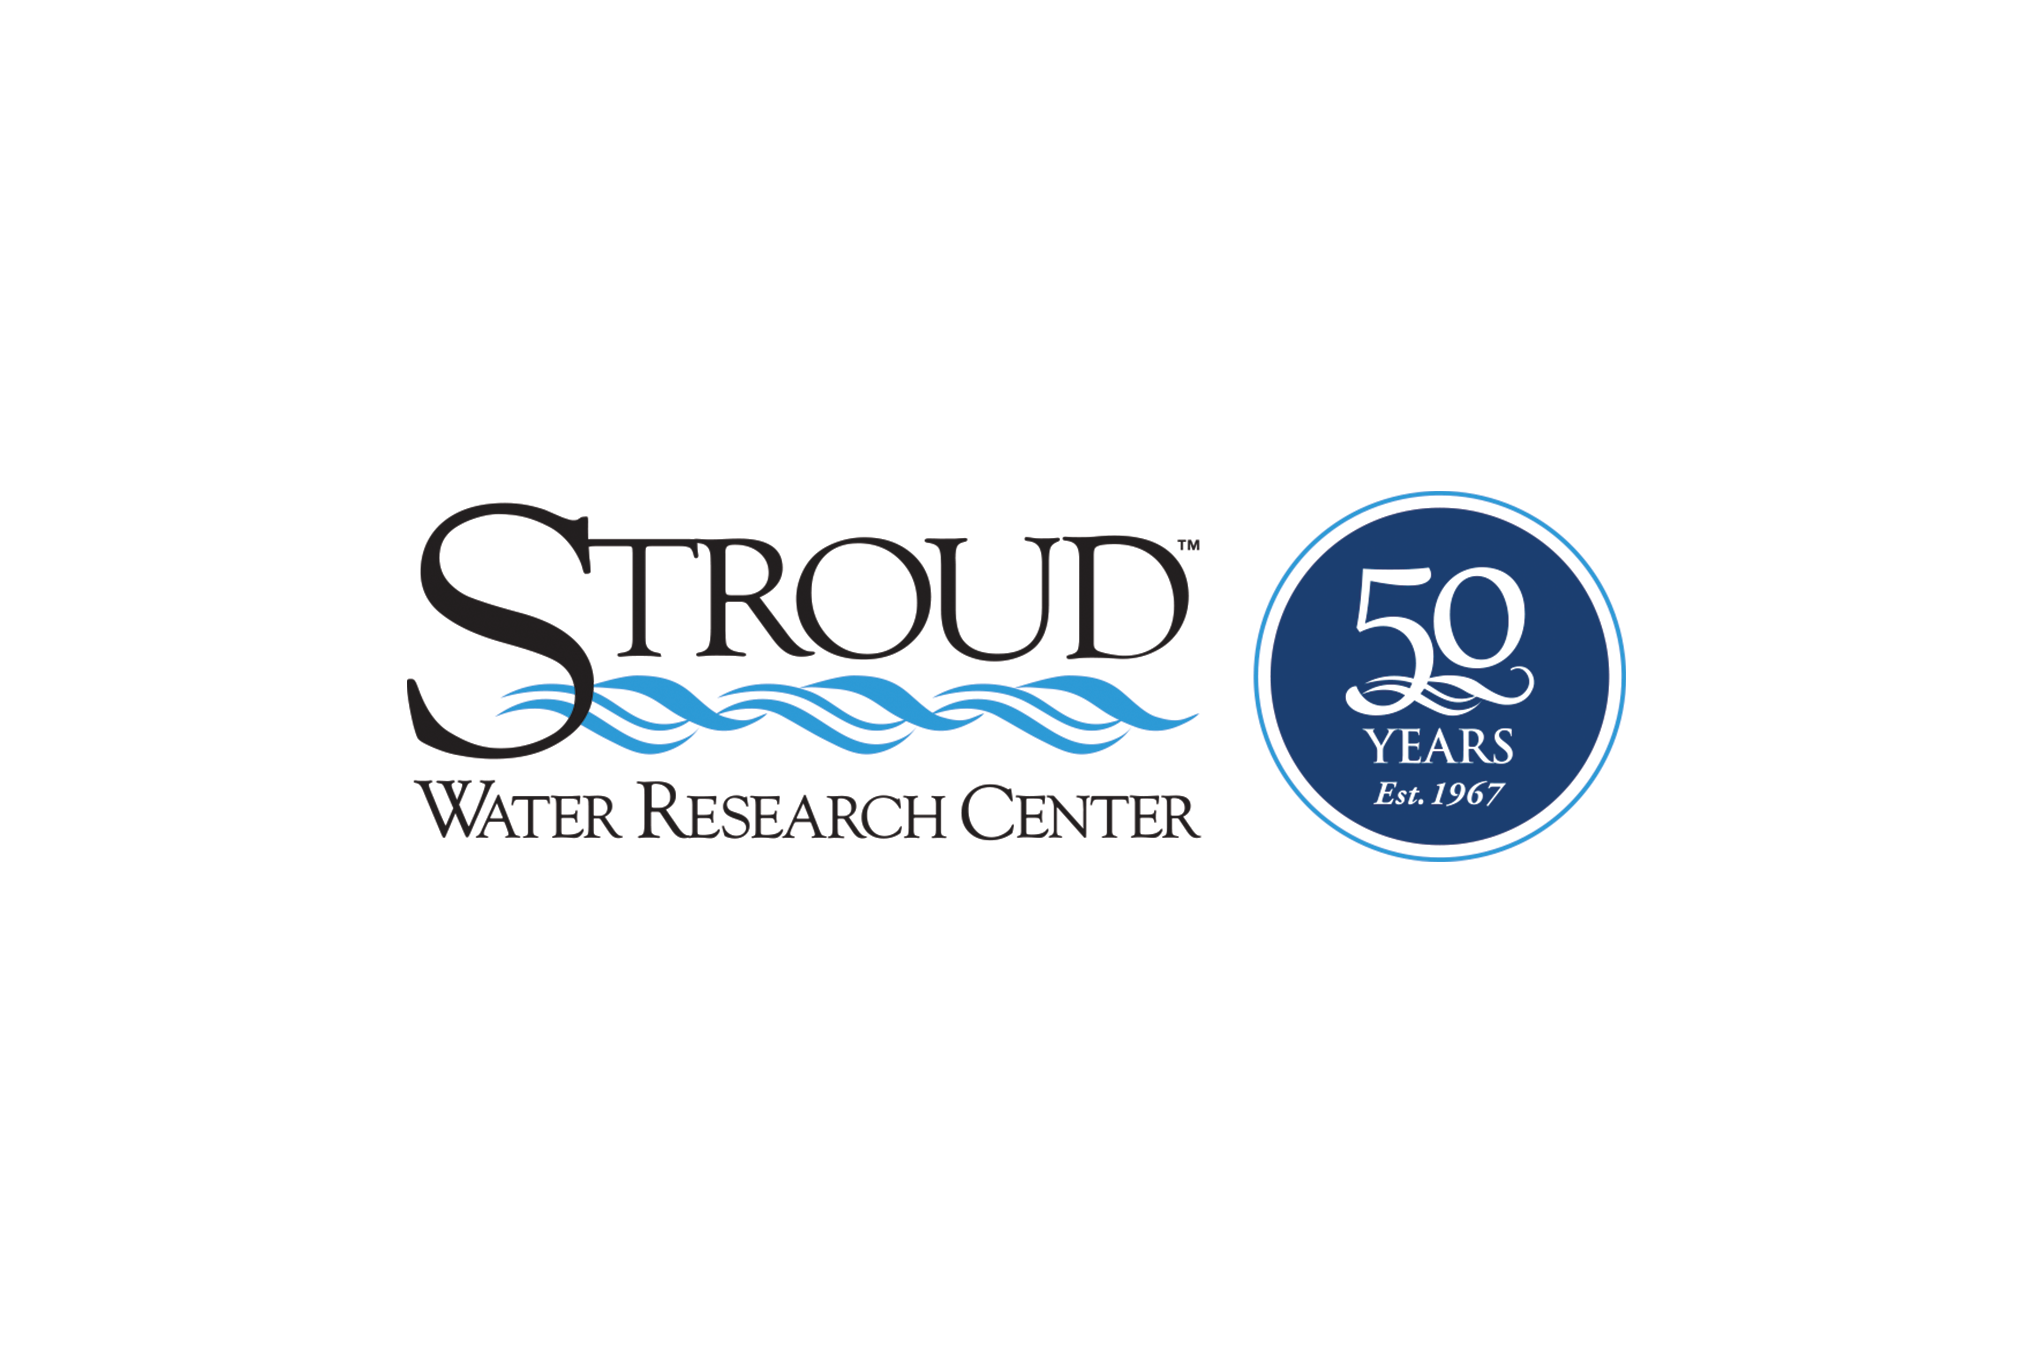 29. Stroud Water Research Center 600x400_2